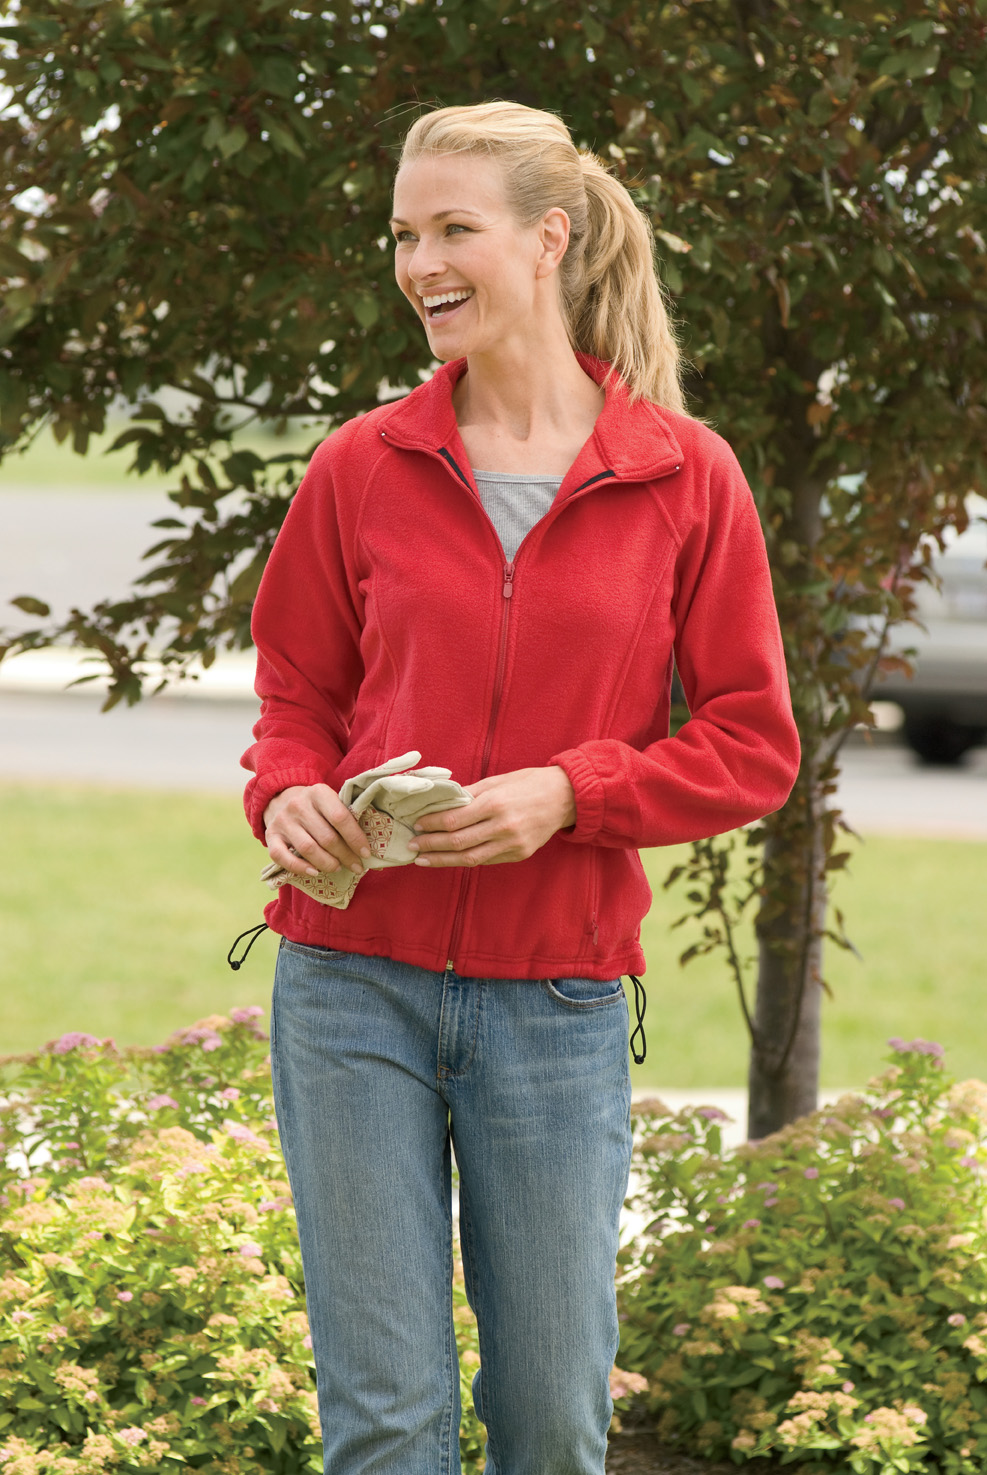 Timberland Women Full Zip Fleece Jacket - from $13.18